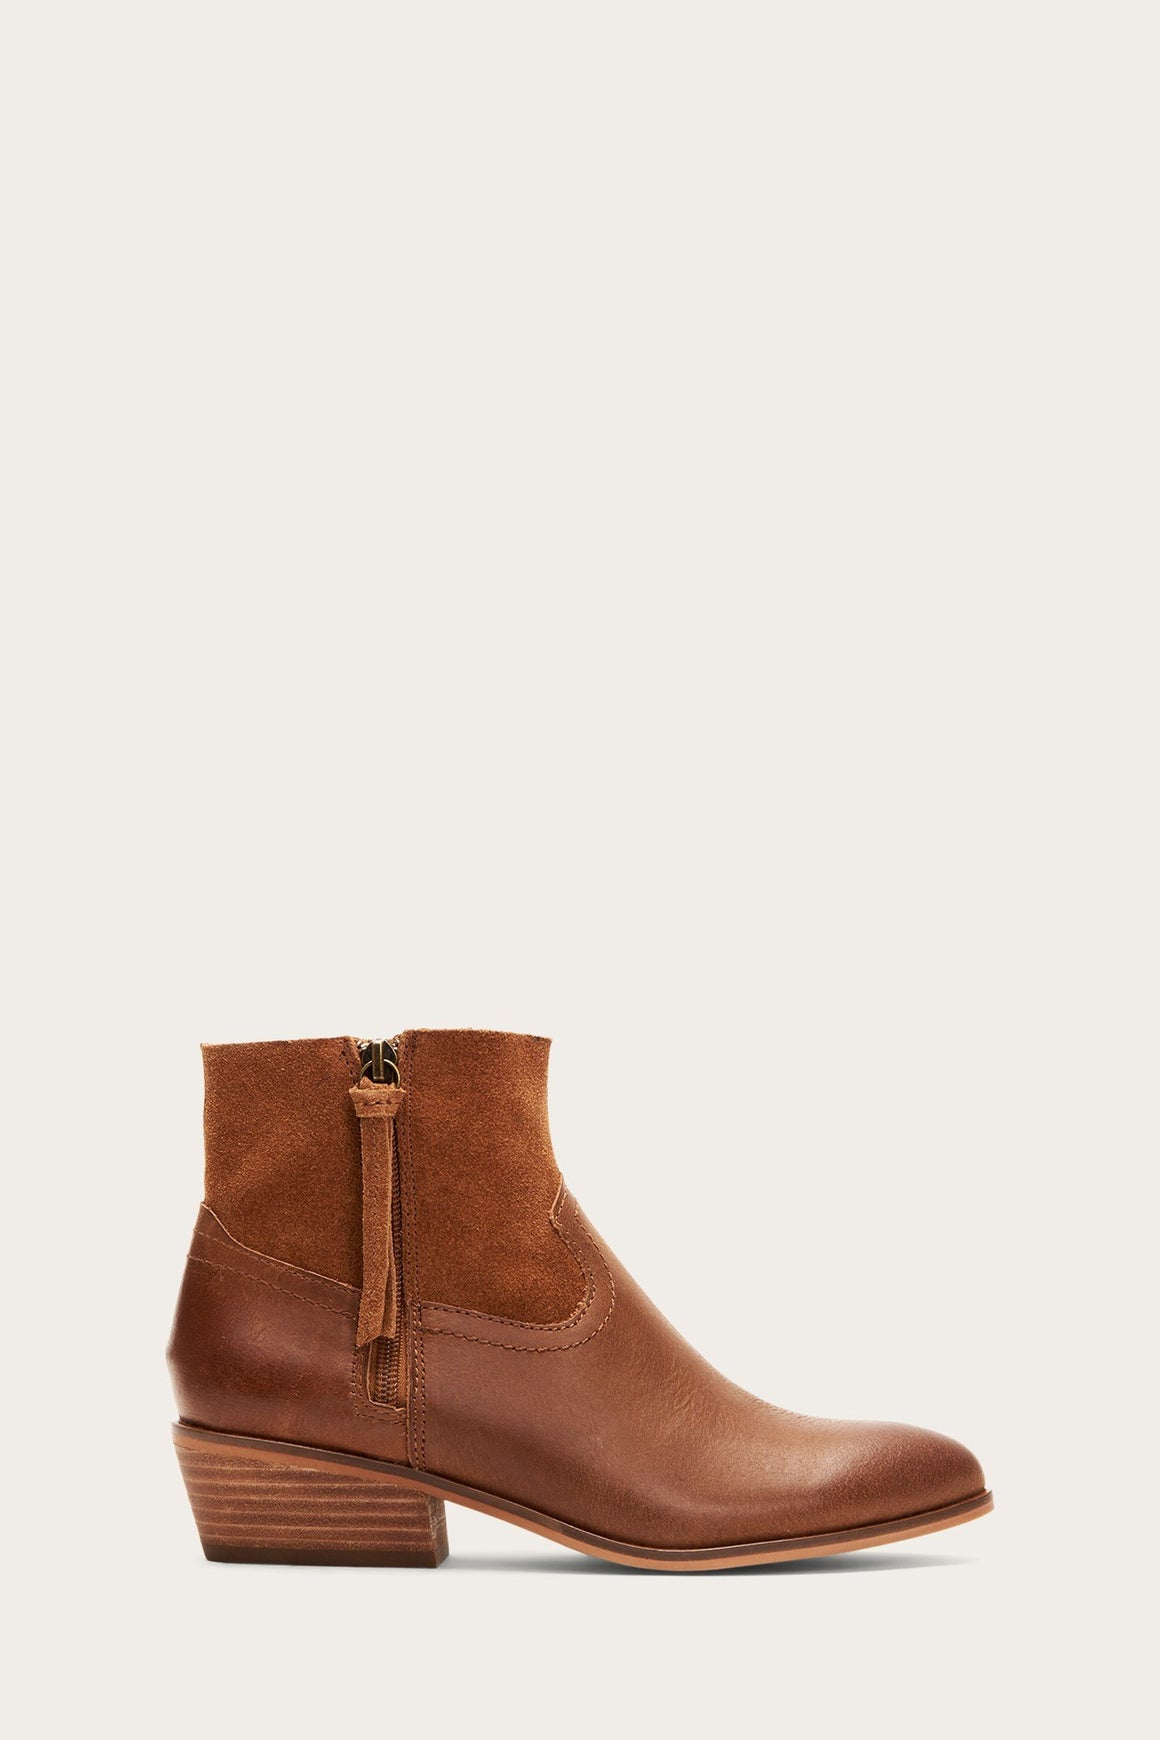 Frye and Co. Rubie Zip